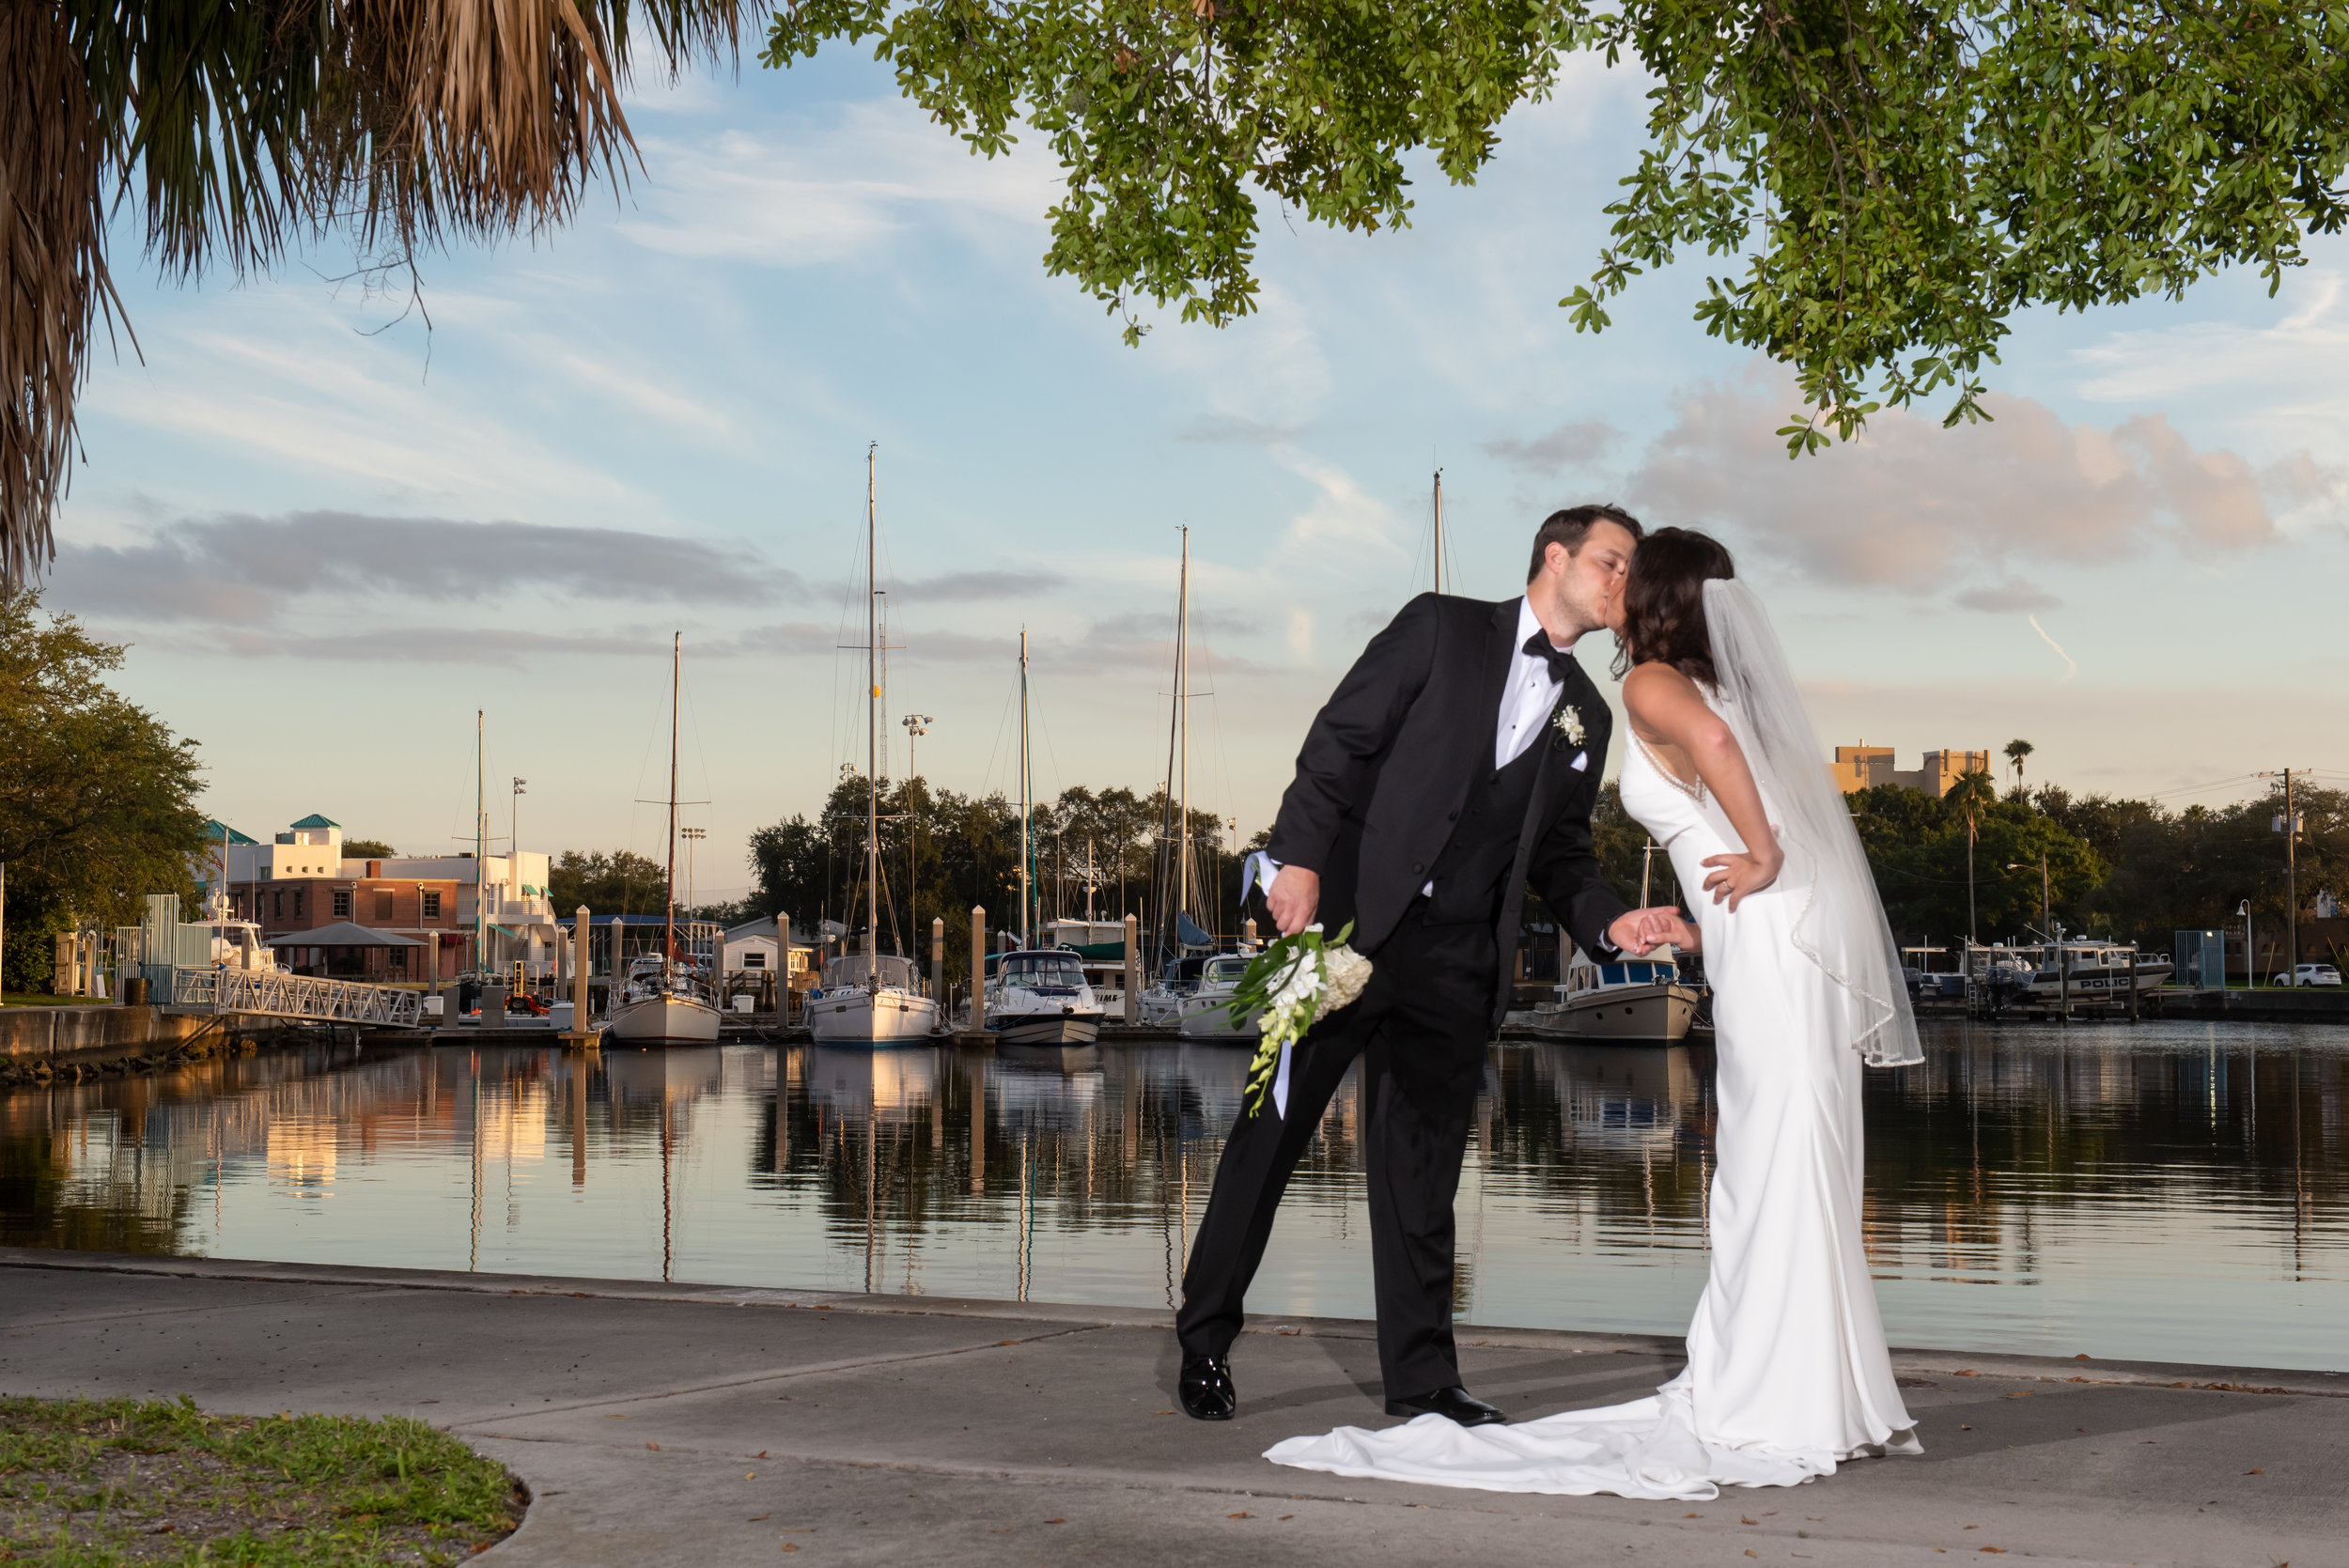 Tampa Bay and a stunning sunset provided the perfect backdrop for this Florida inspired soiree.